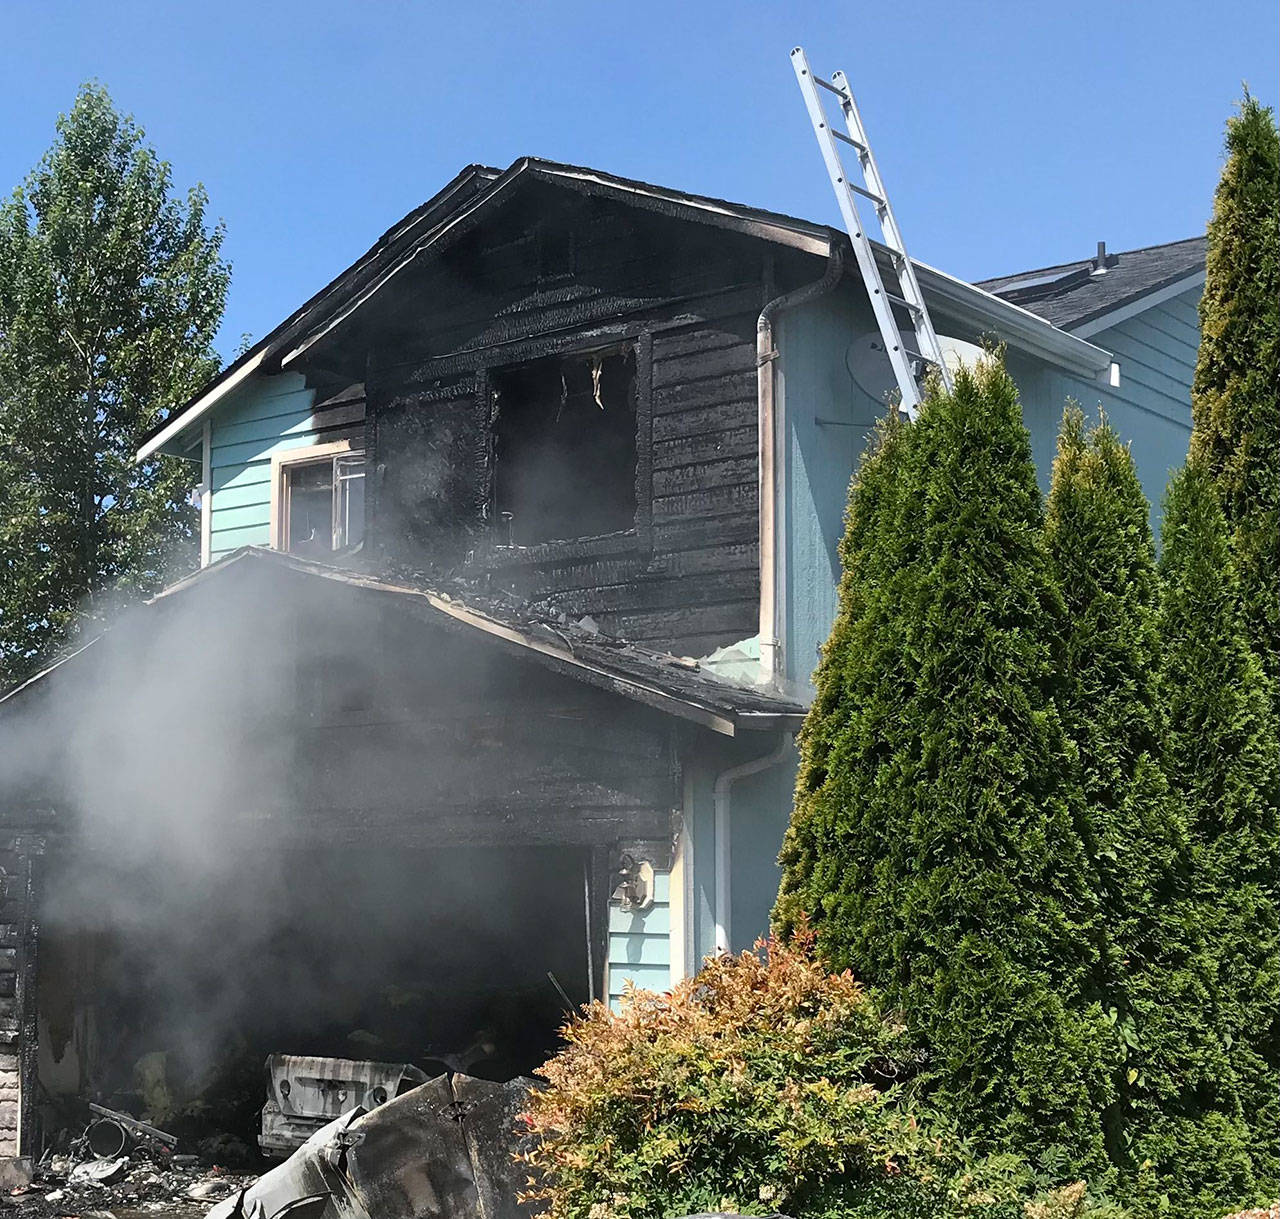 A house caught fire Friday afternoon in Marysville. (Marysville Fire District)